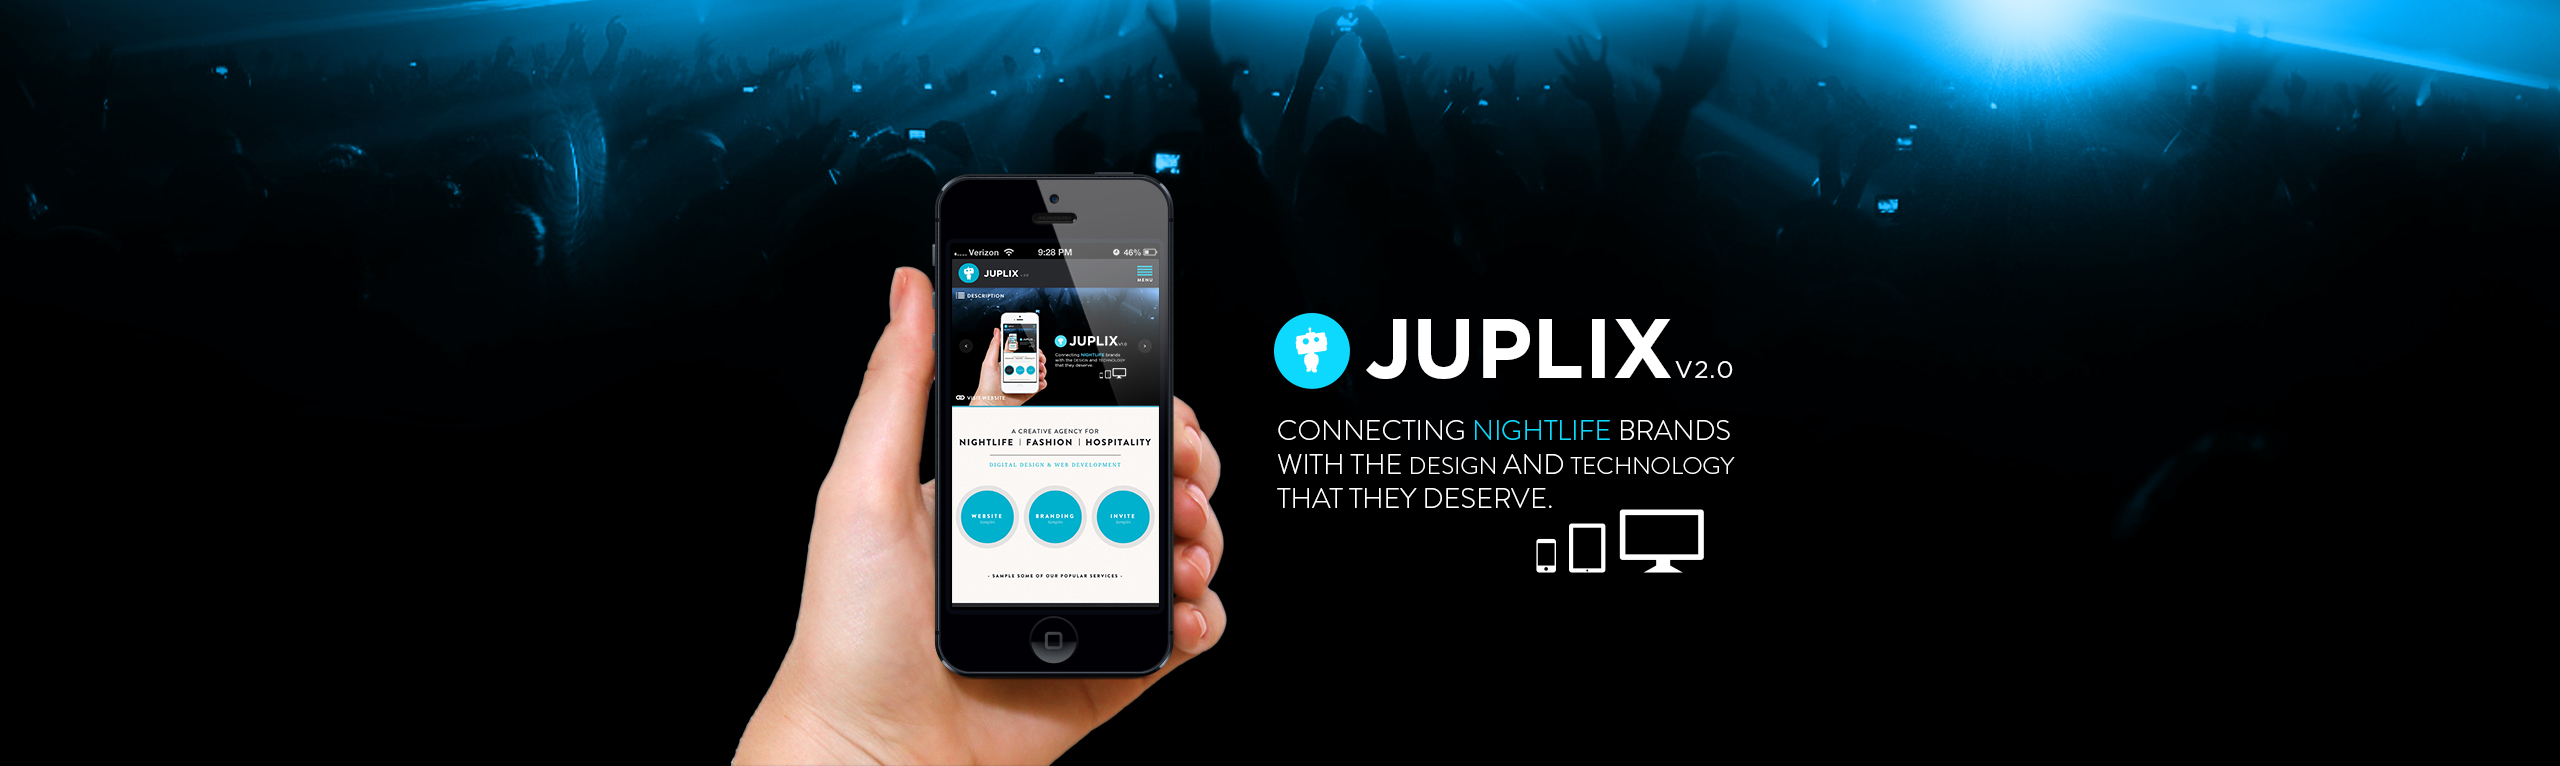 Juplix_nightlife_header